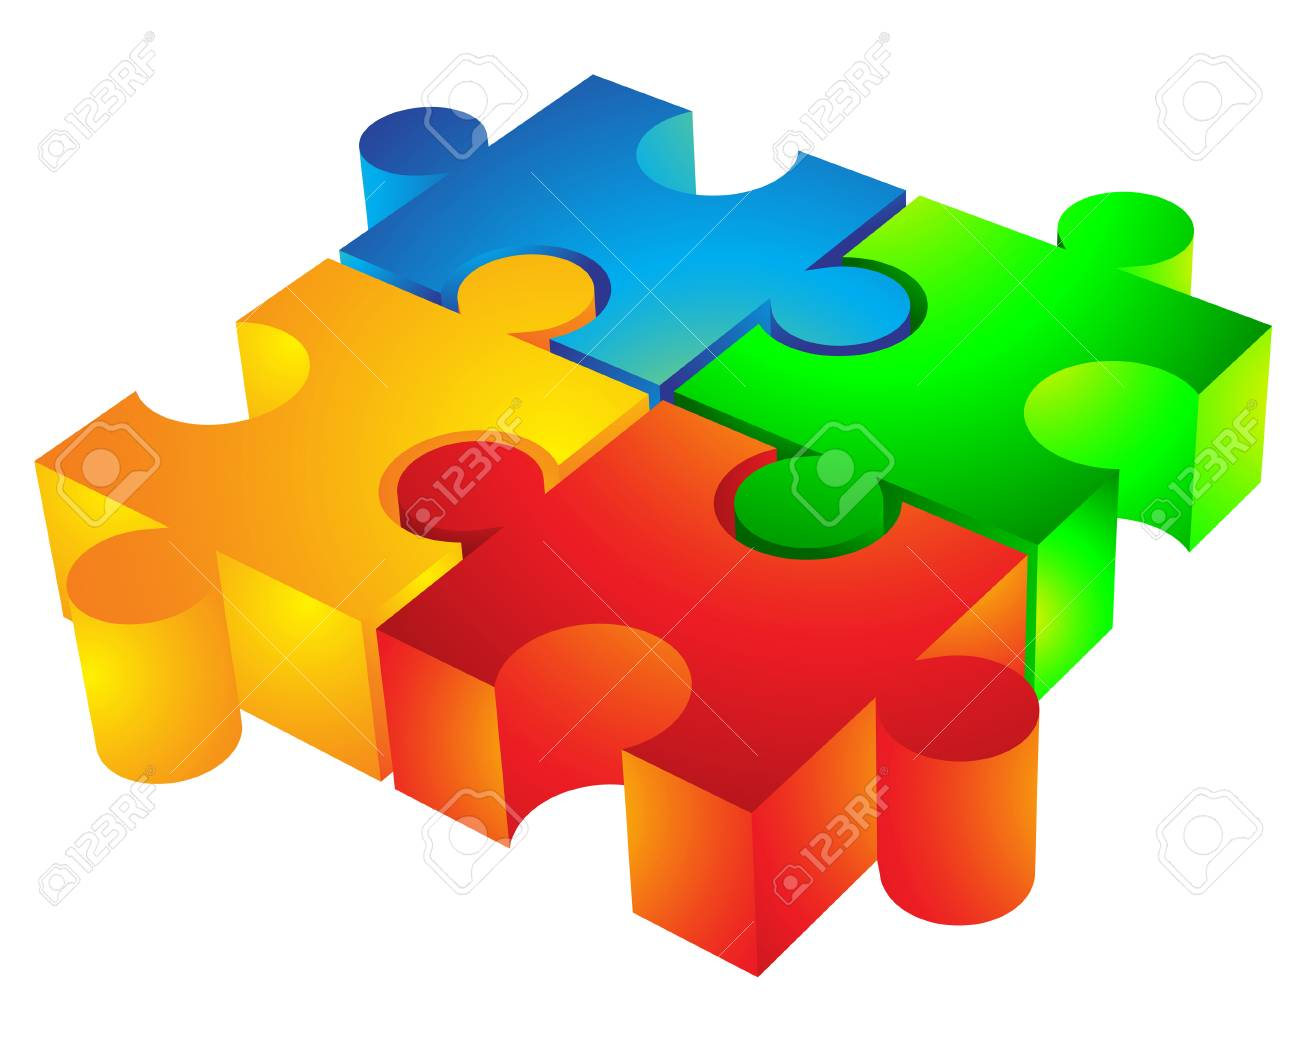 Jigsaw Puzzle 3d Icon Isolated On White Stock Photo